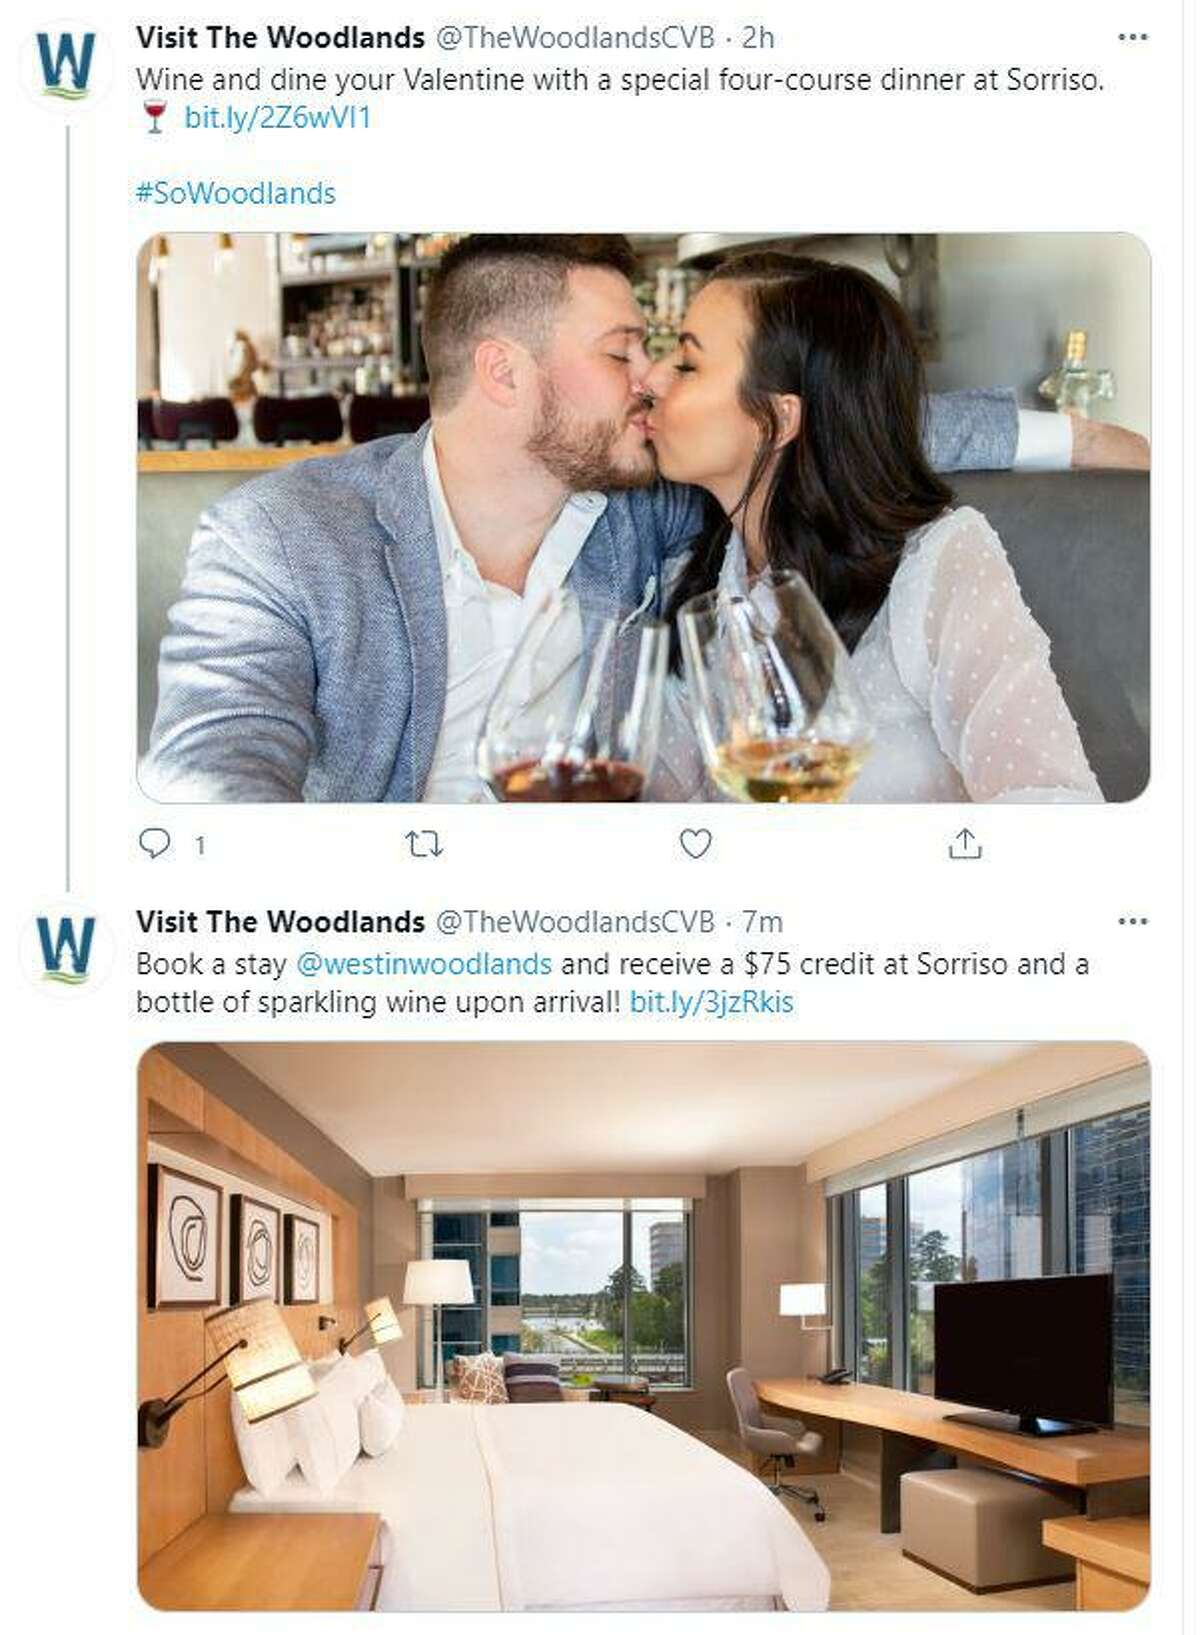 The Woodlands Township's convention and tourism arm, Visit The Woodlands, is now aiming marketing efforts at tourists who are driving to the community rather than flying. The new marketing efforts include more social media posts such as this pairing a local restaurant and hotel for Valentine's Day.